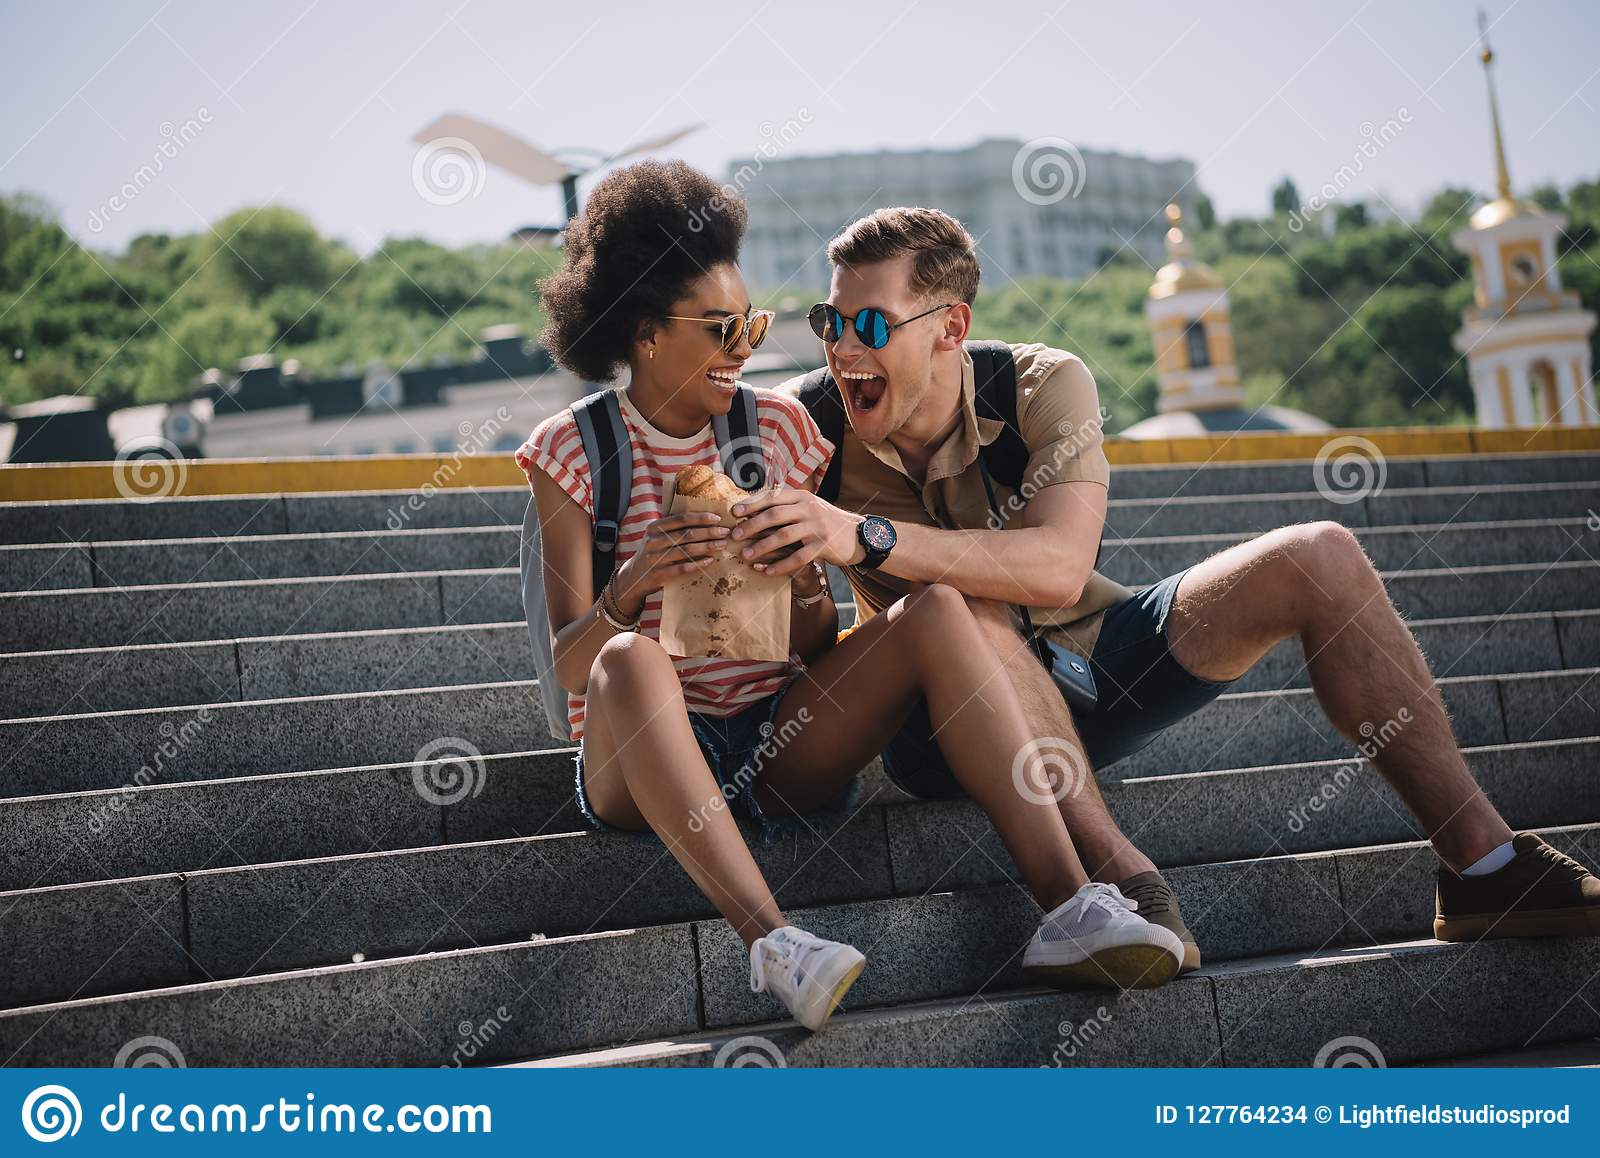 young male traveler trying to eat girlfriend